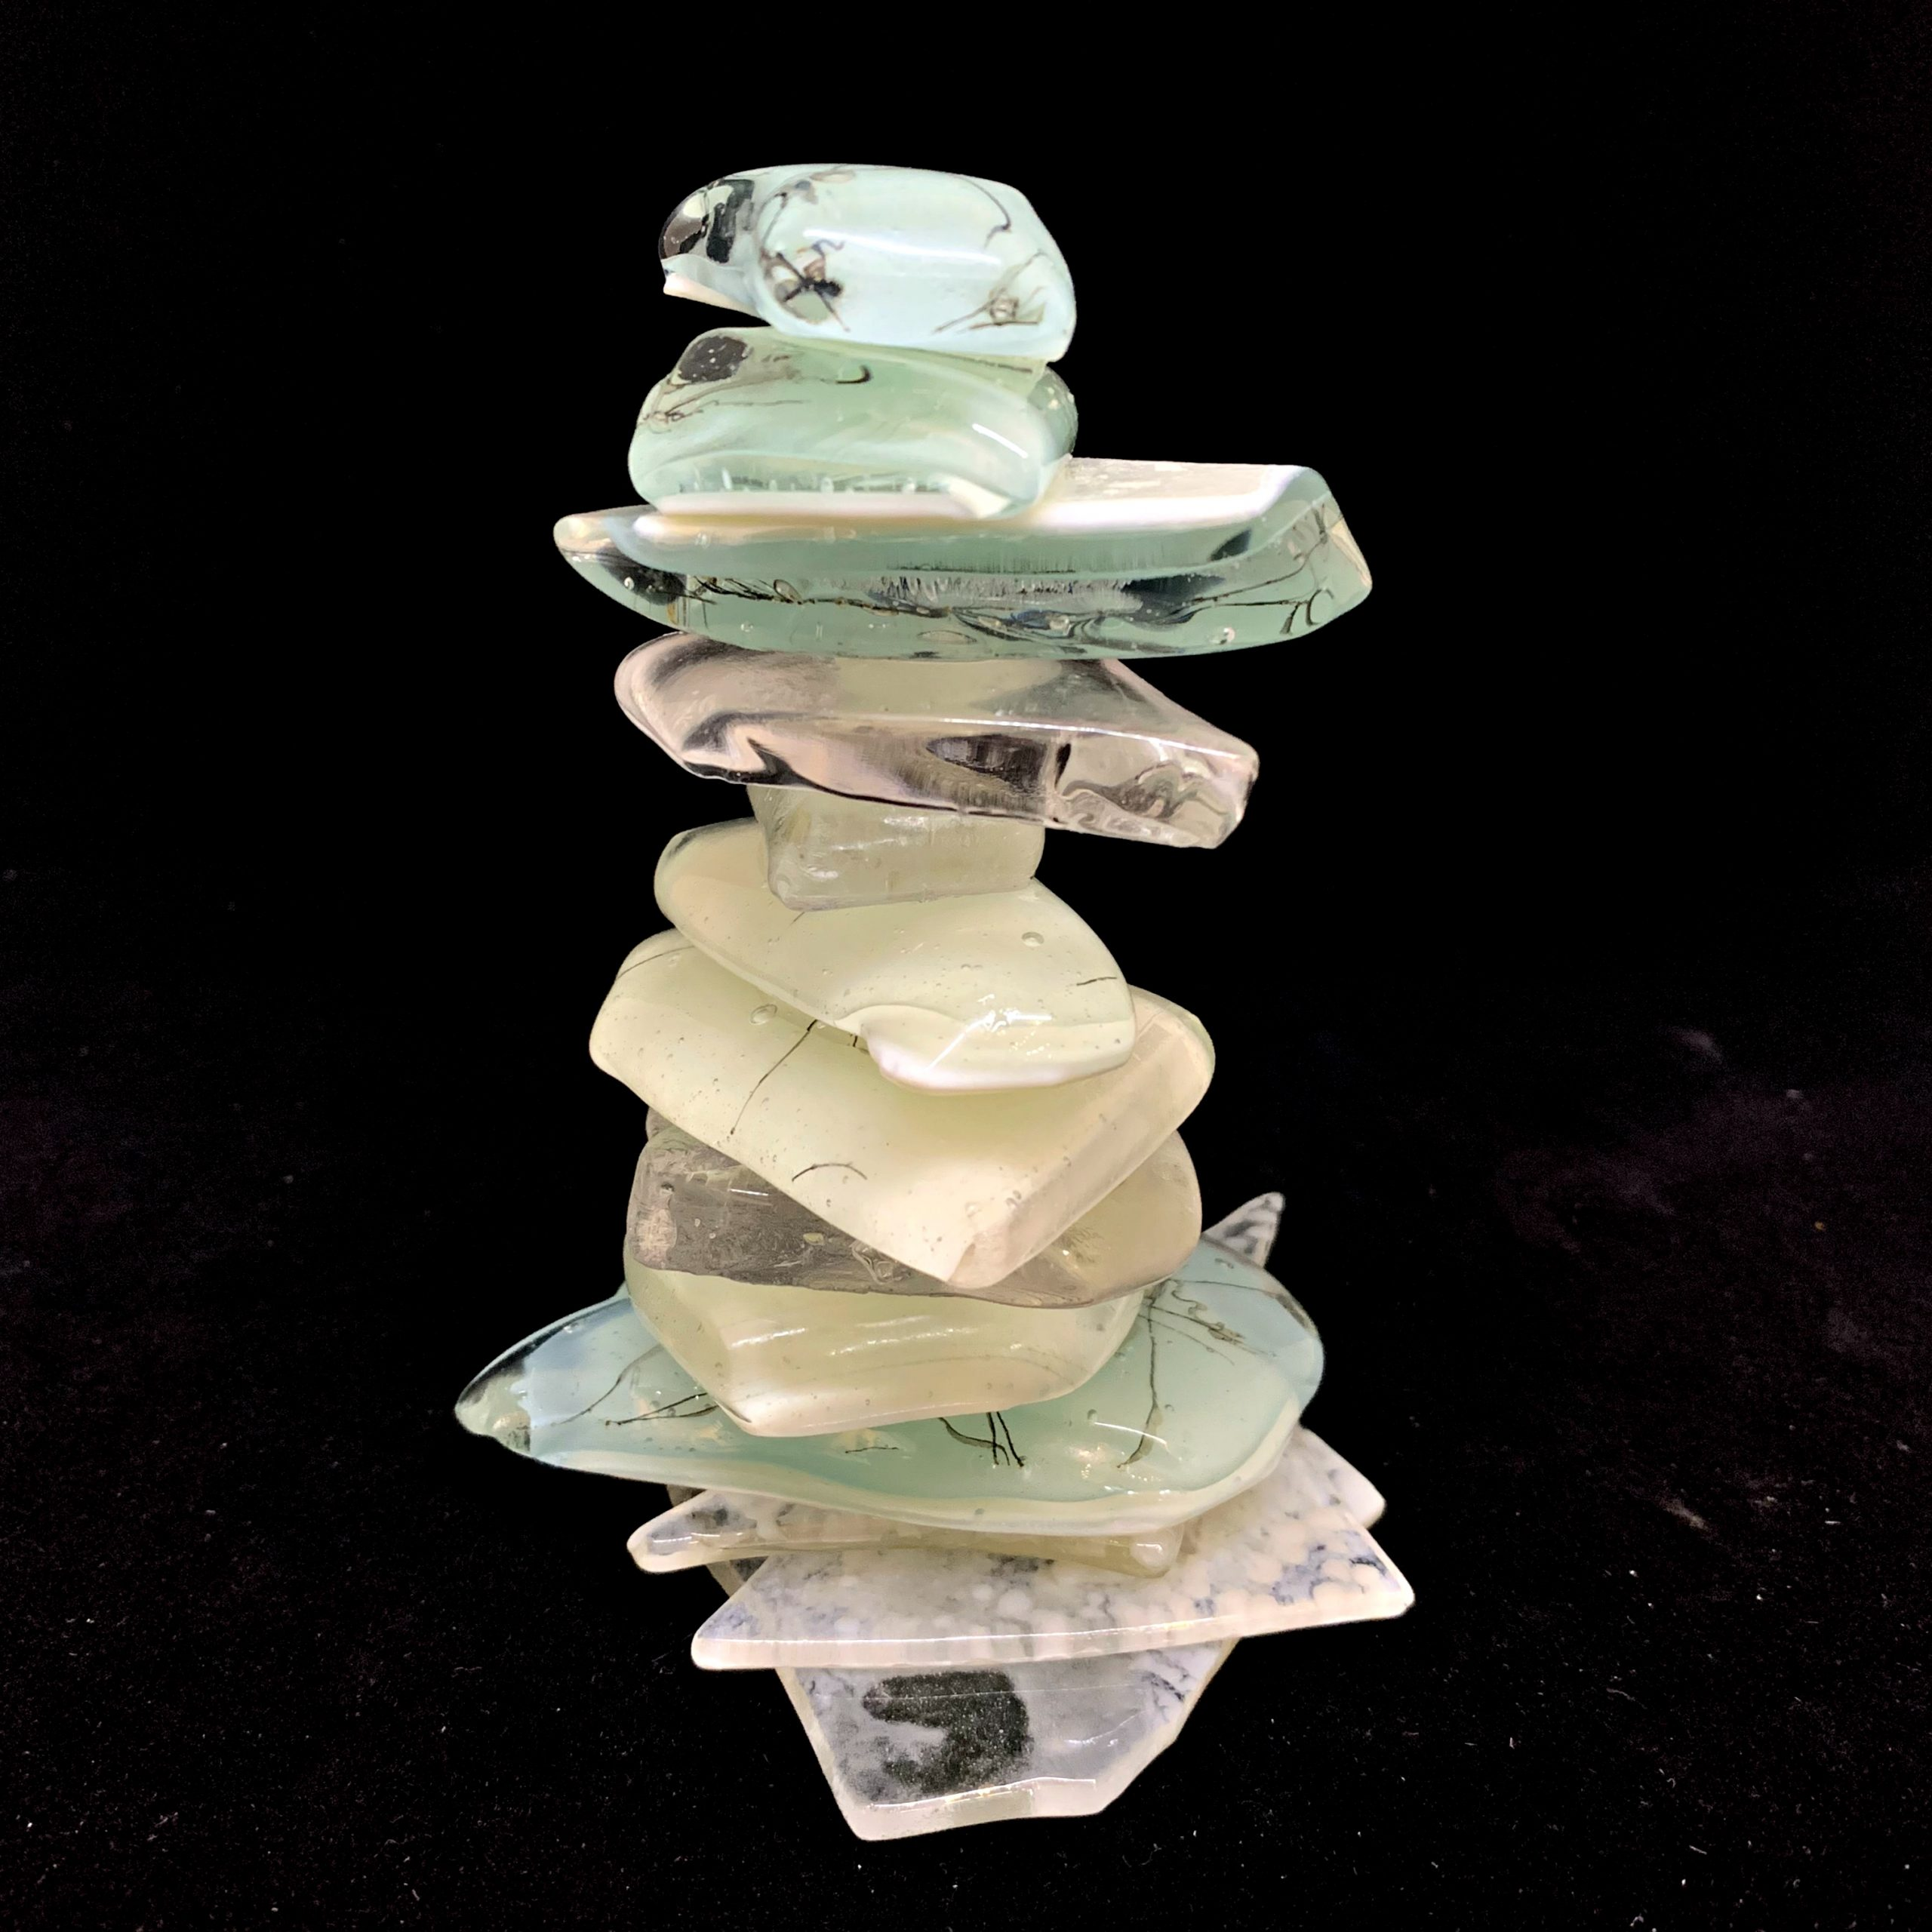 Rocky Mountain Cairn 27, cast glass sculpture by Heather Cuell | Effusion Art Gallery + Cast Glass Studio, Invermere BC